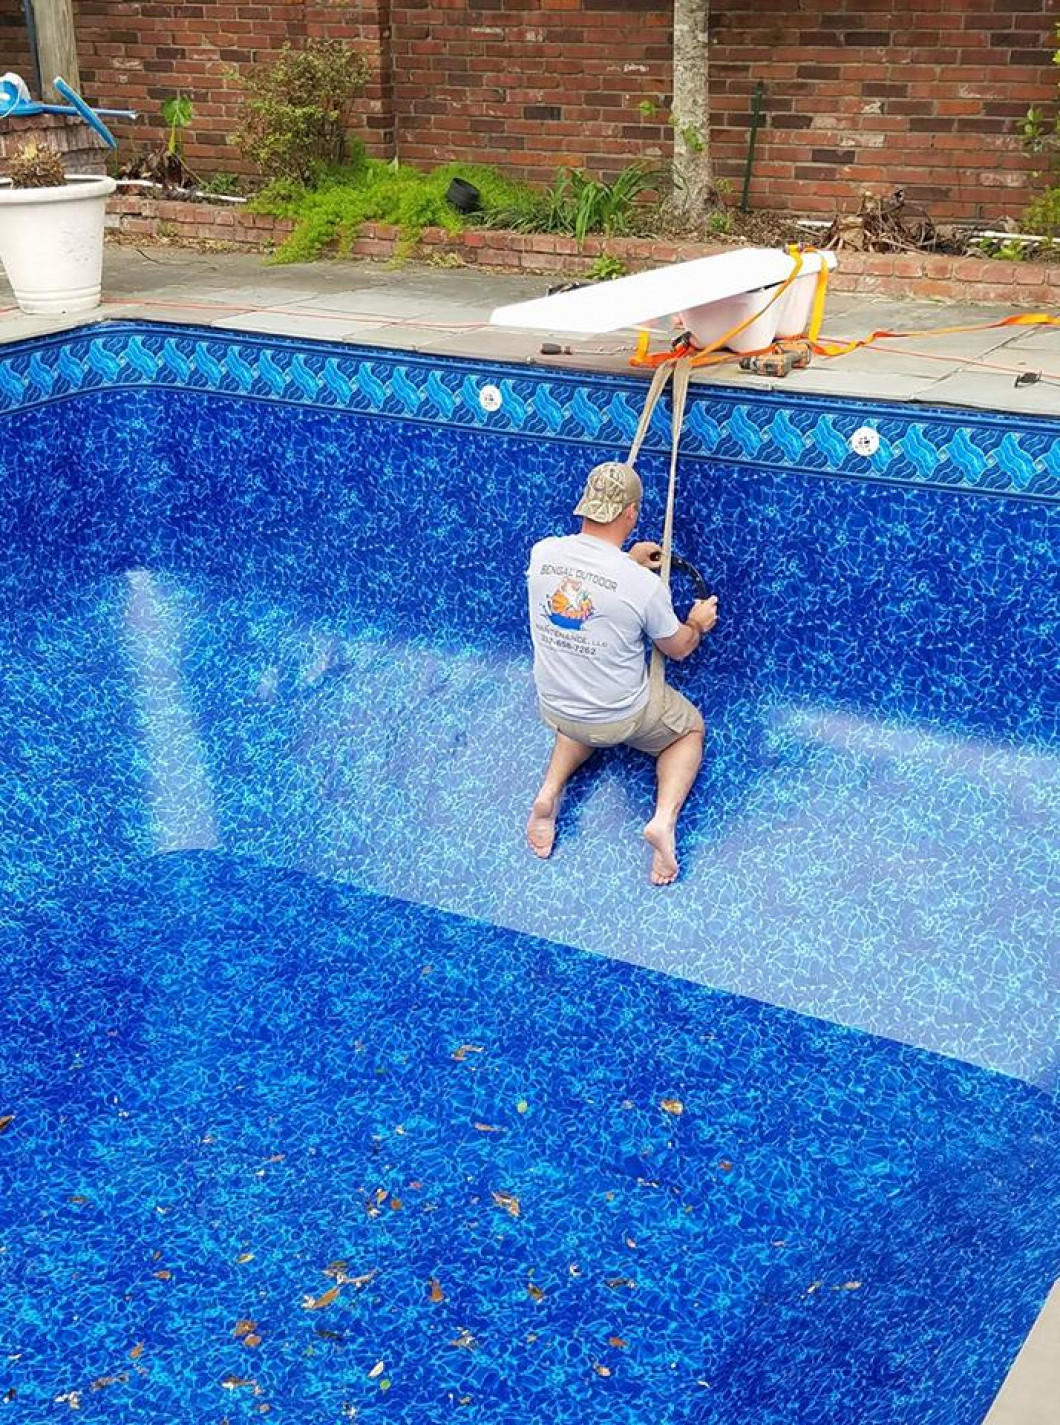 Pool Maintenance and Pool Services in Eunice, LA